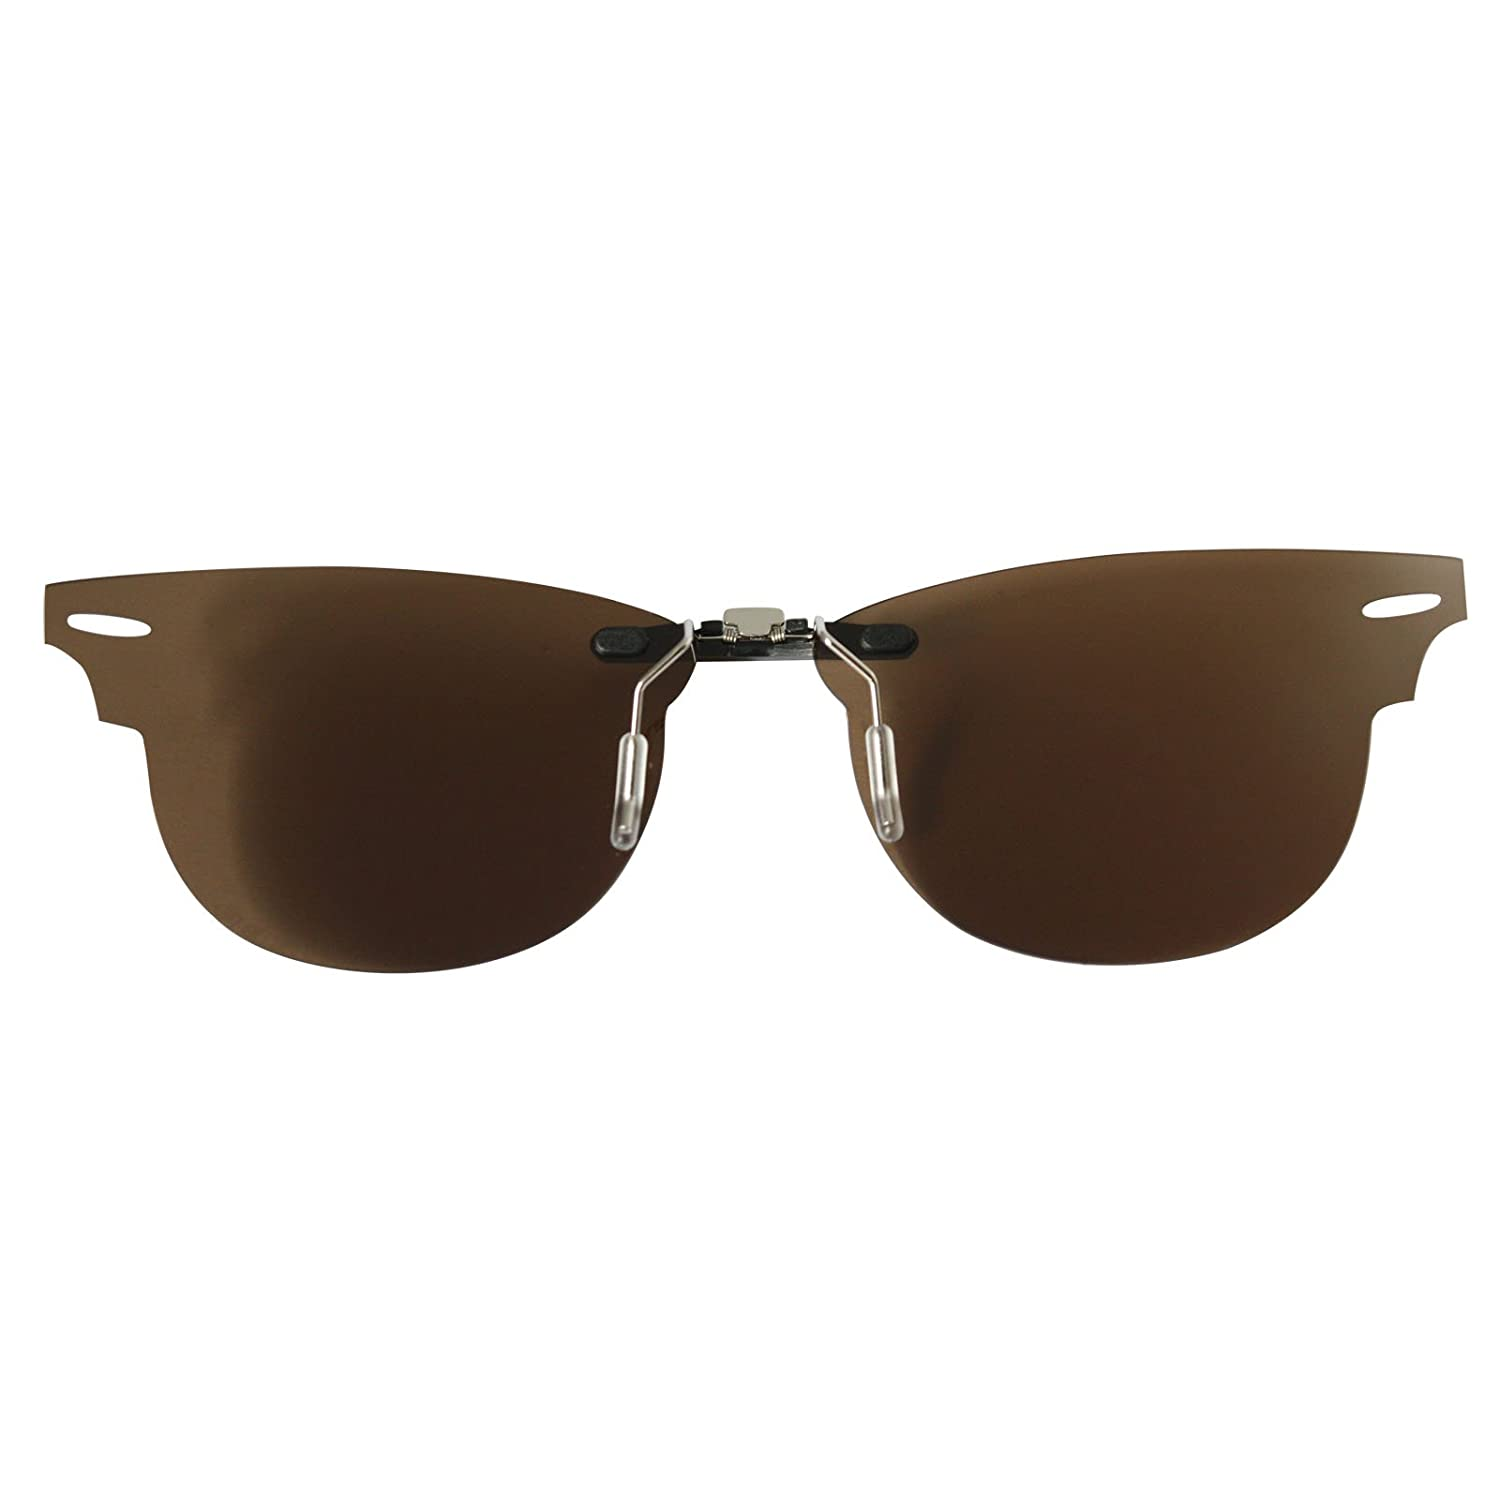 57f54f19bc4 Custom Polarized CLIP-ON Sunglasses for Ray-Ban CLUBMASTER RB5154 49X21  5154(No Frame) Brown - - Amazon.com